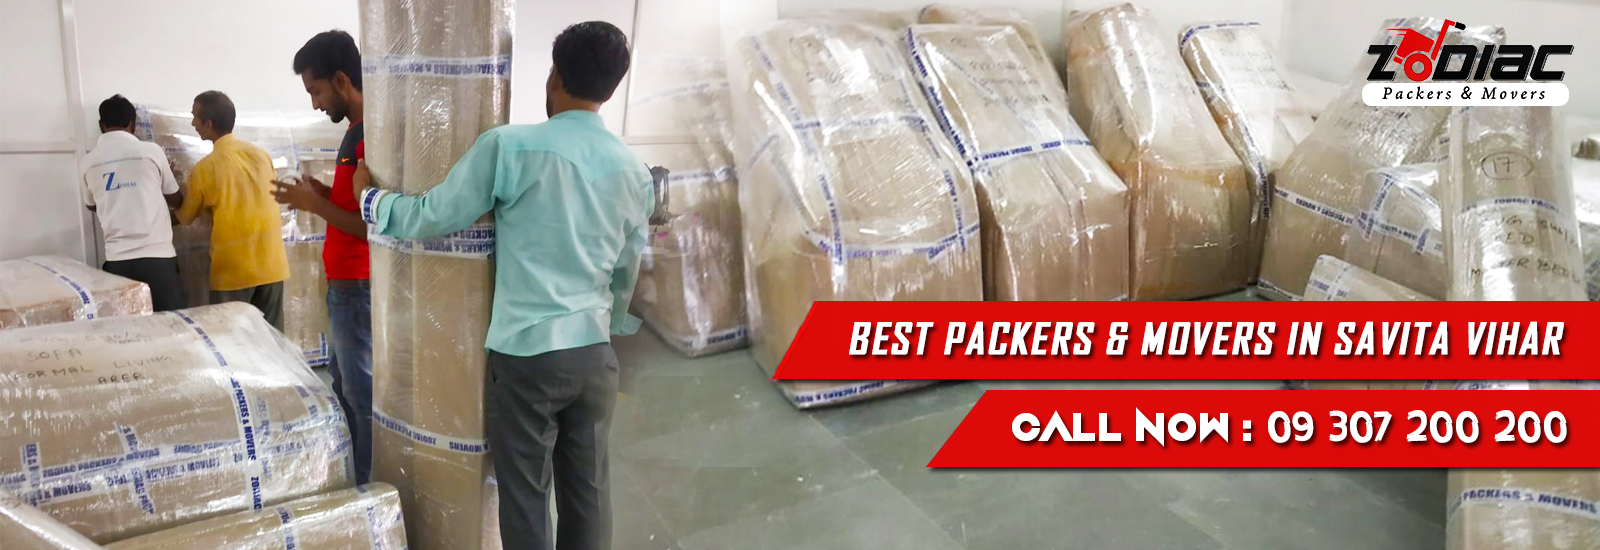 Packers and Movers in Savita Vihar